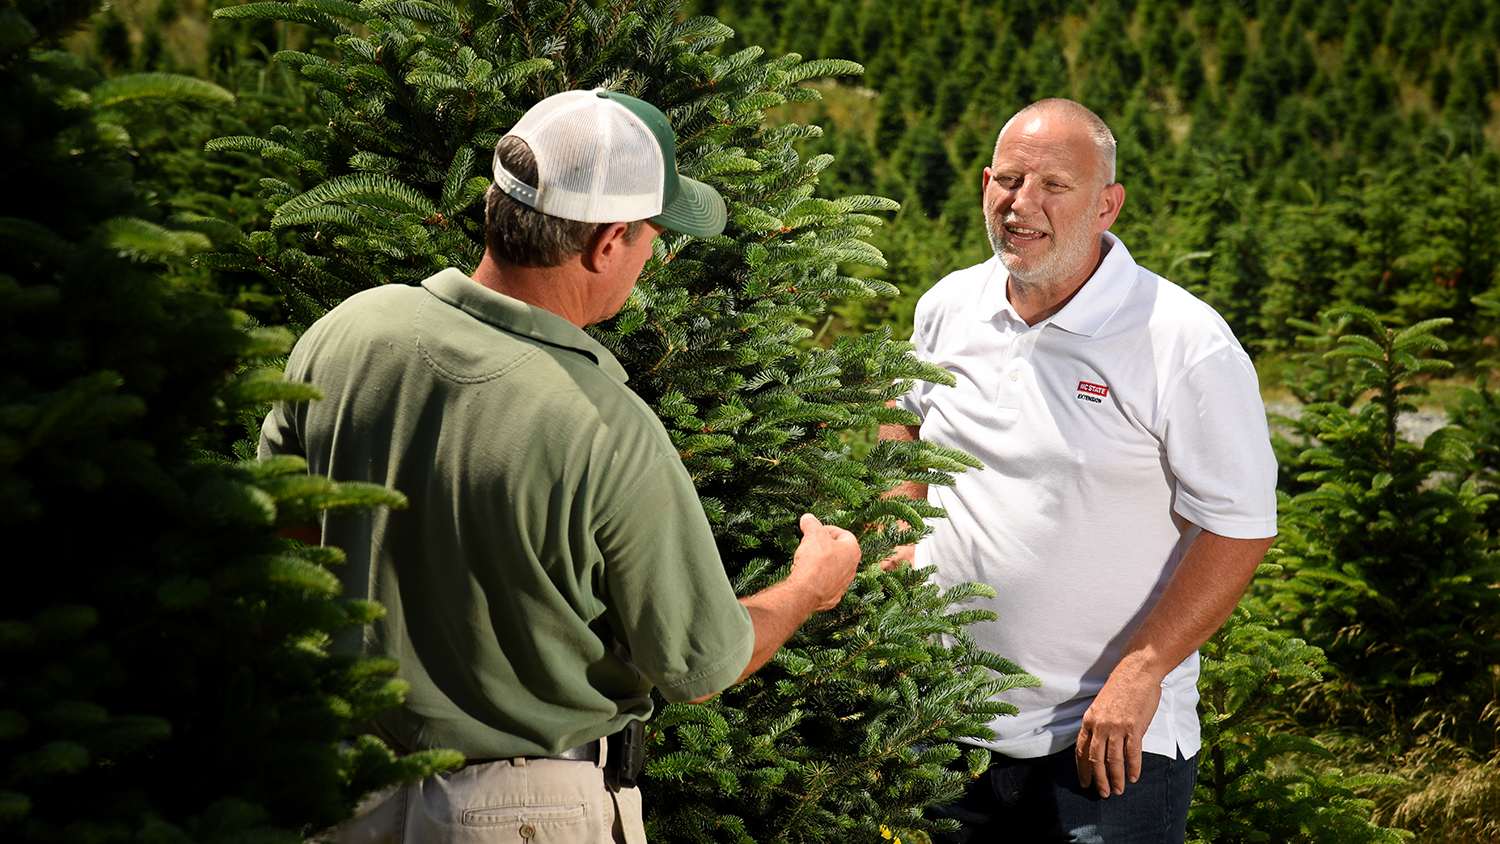 Two people working and talking on Christmas tree farm